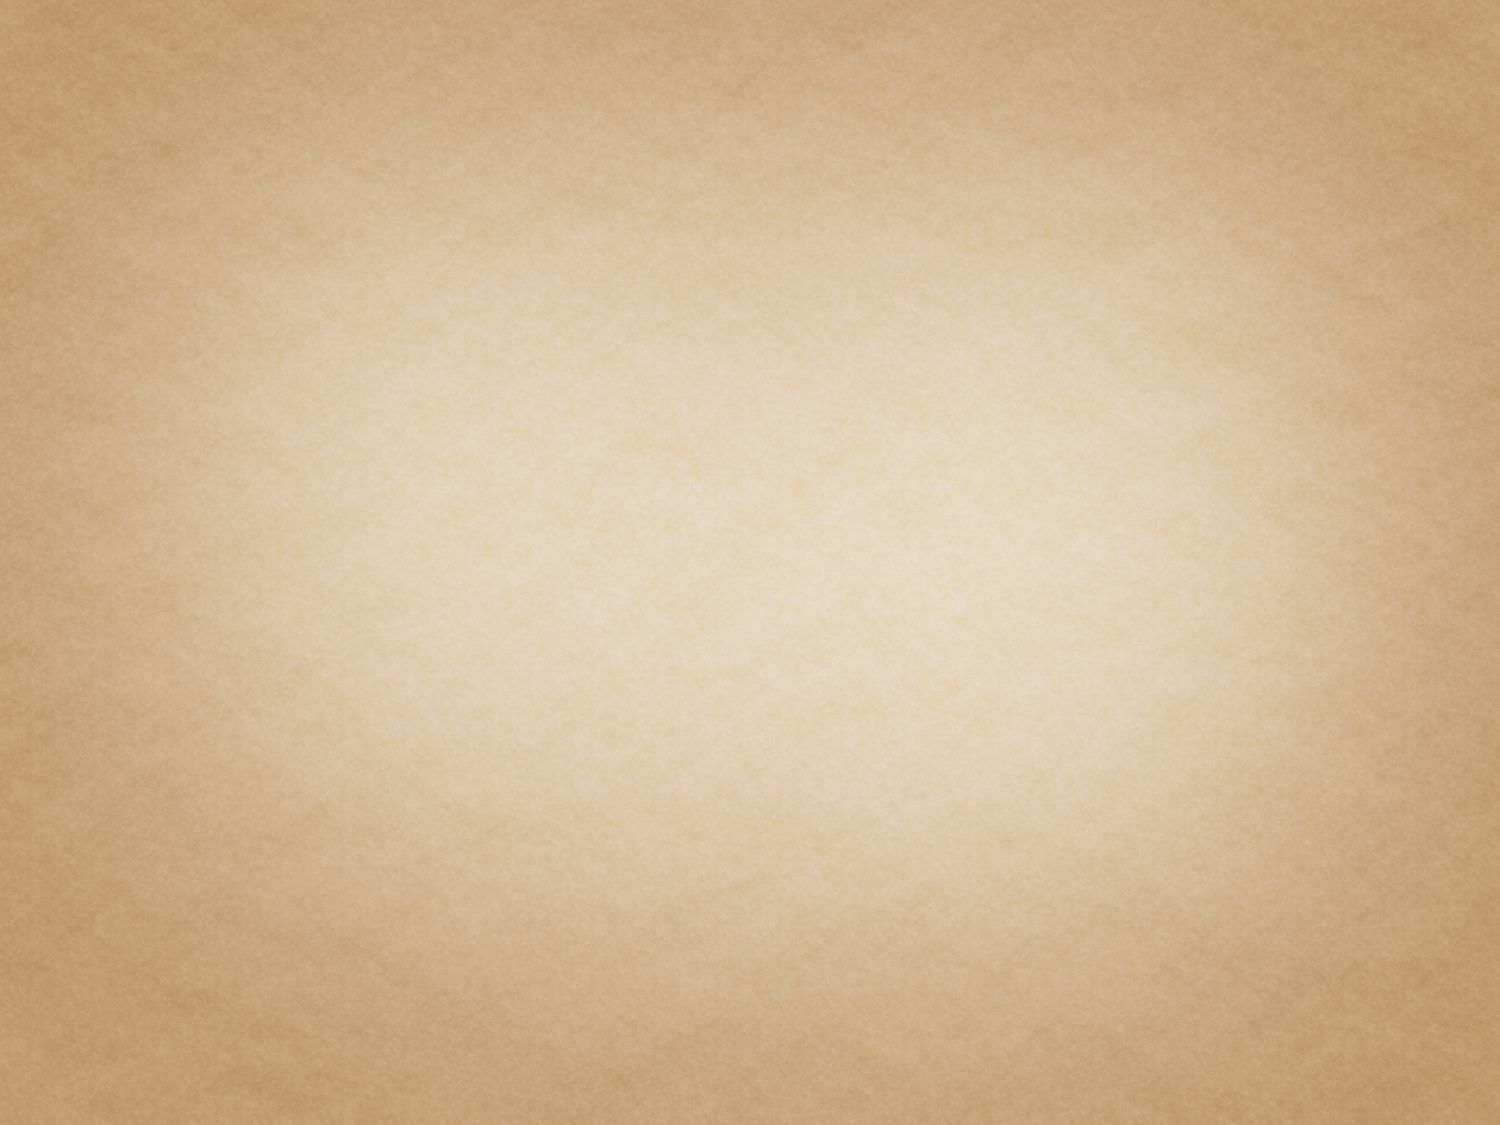 web background | Graphic Design | Pinterest | Free texture backgrounds